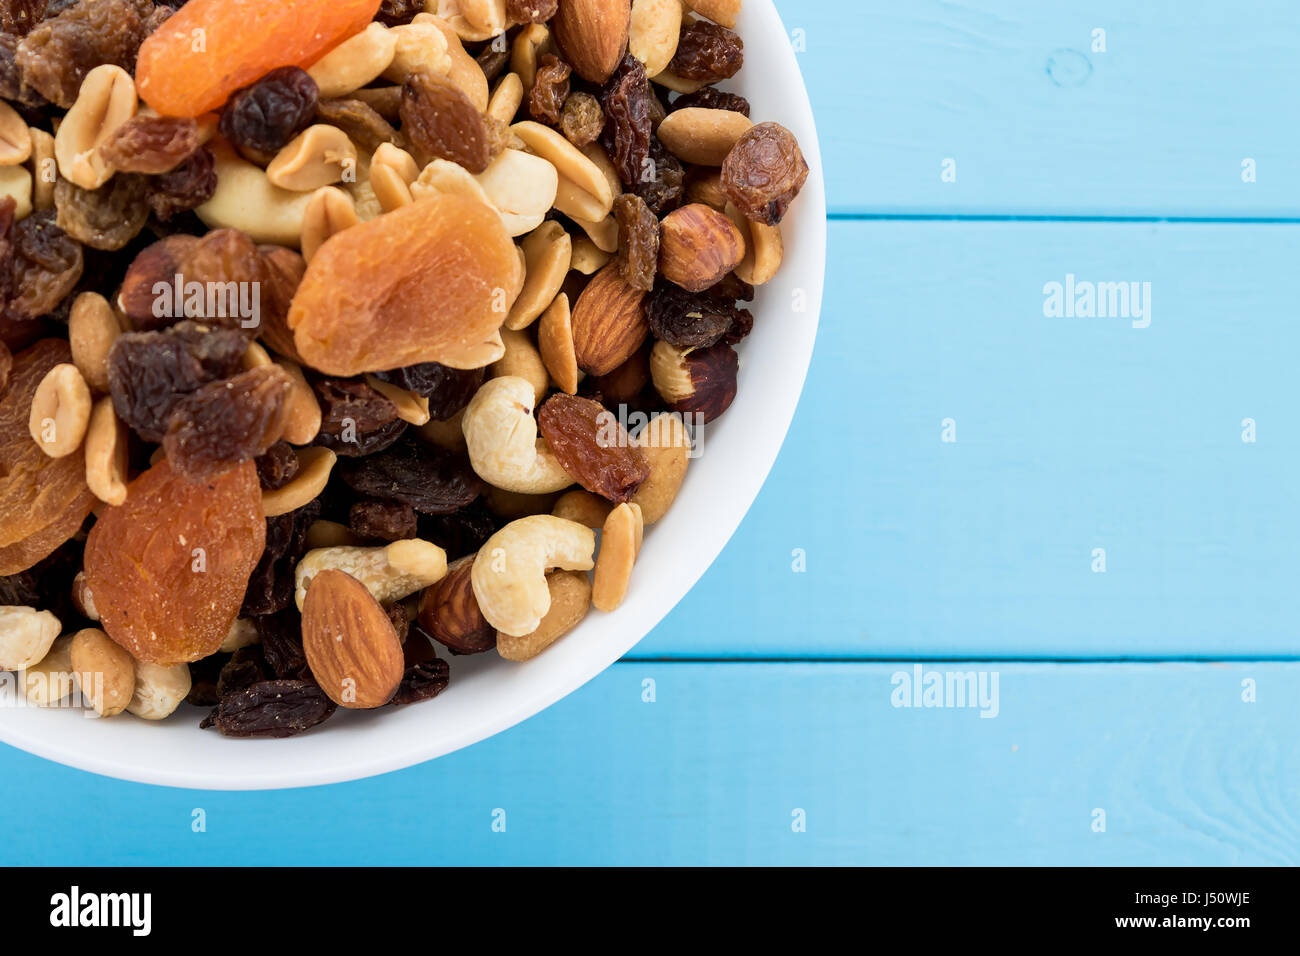 Assorted nuts and dry fruit in white bowl - Stock Image